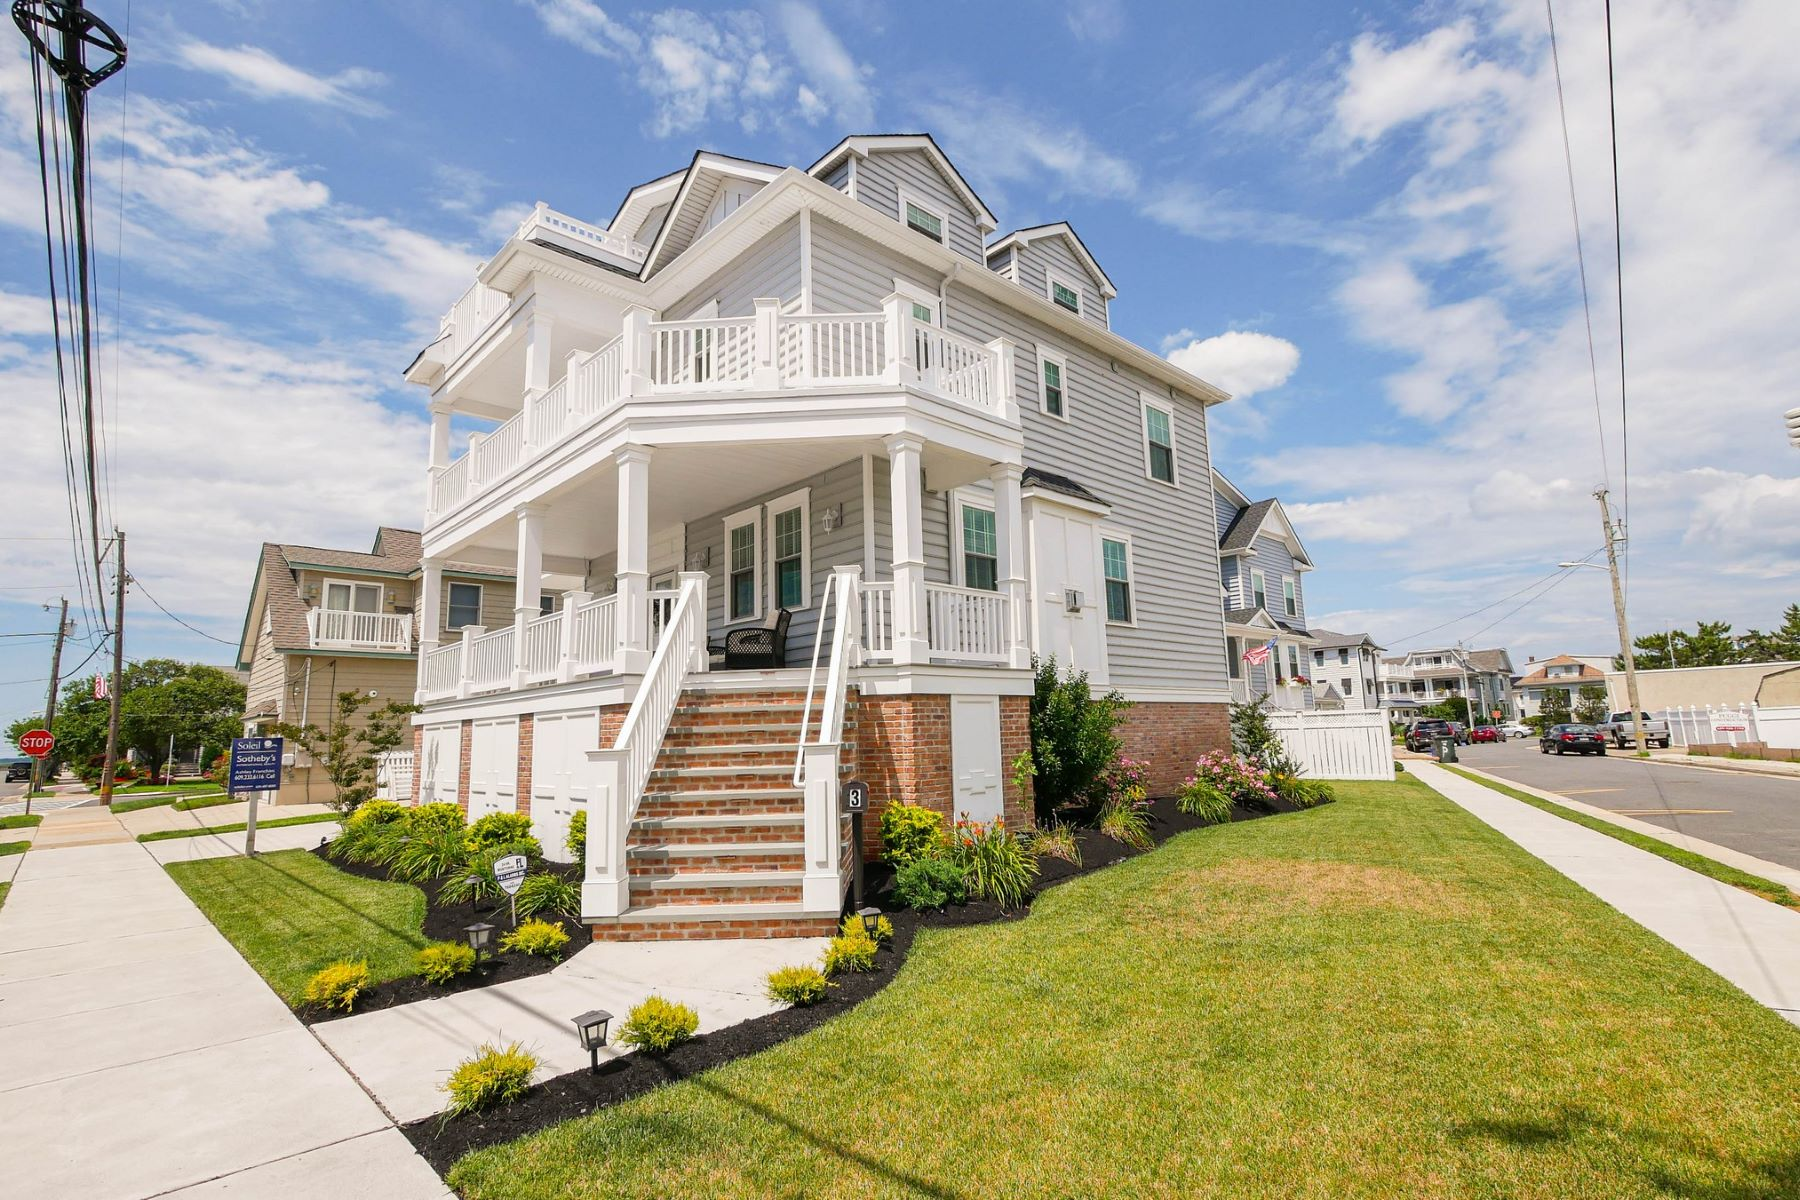 Single Family Homes for Active at 3 S 30th Ave, Southside Longport, New Jersey 08403 United States